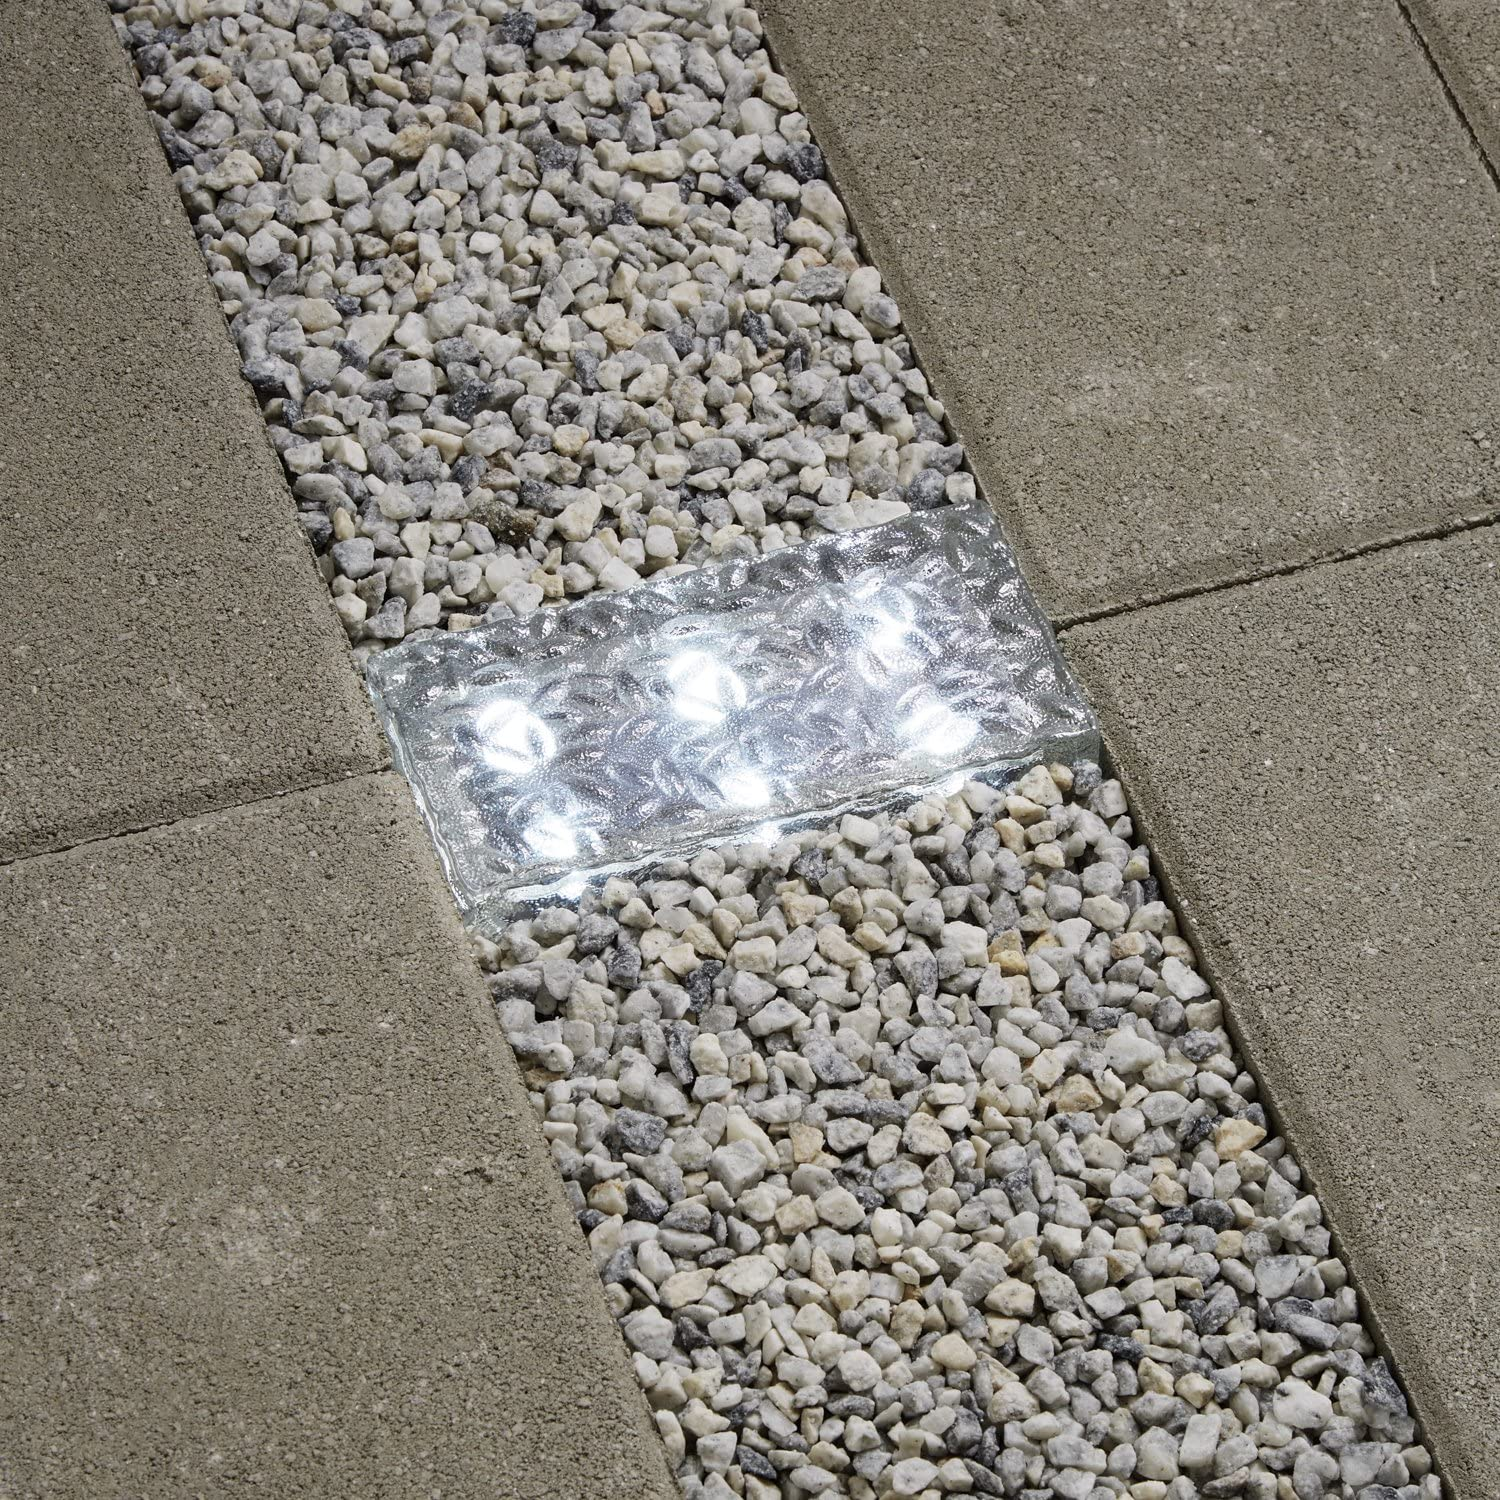 8x4 Solar Brick Landscape Light 6 Cool White Leds Textured Glass Rectangle Paver Waterproof Outdoor Use No Wires Easy To Install Rechargeable Battery Included Home Improvement